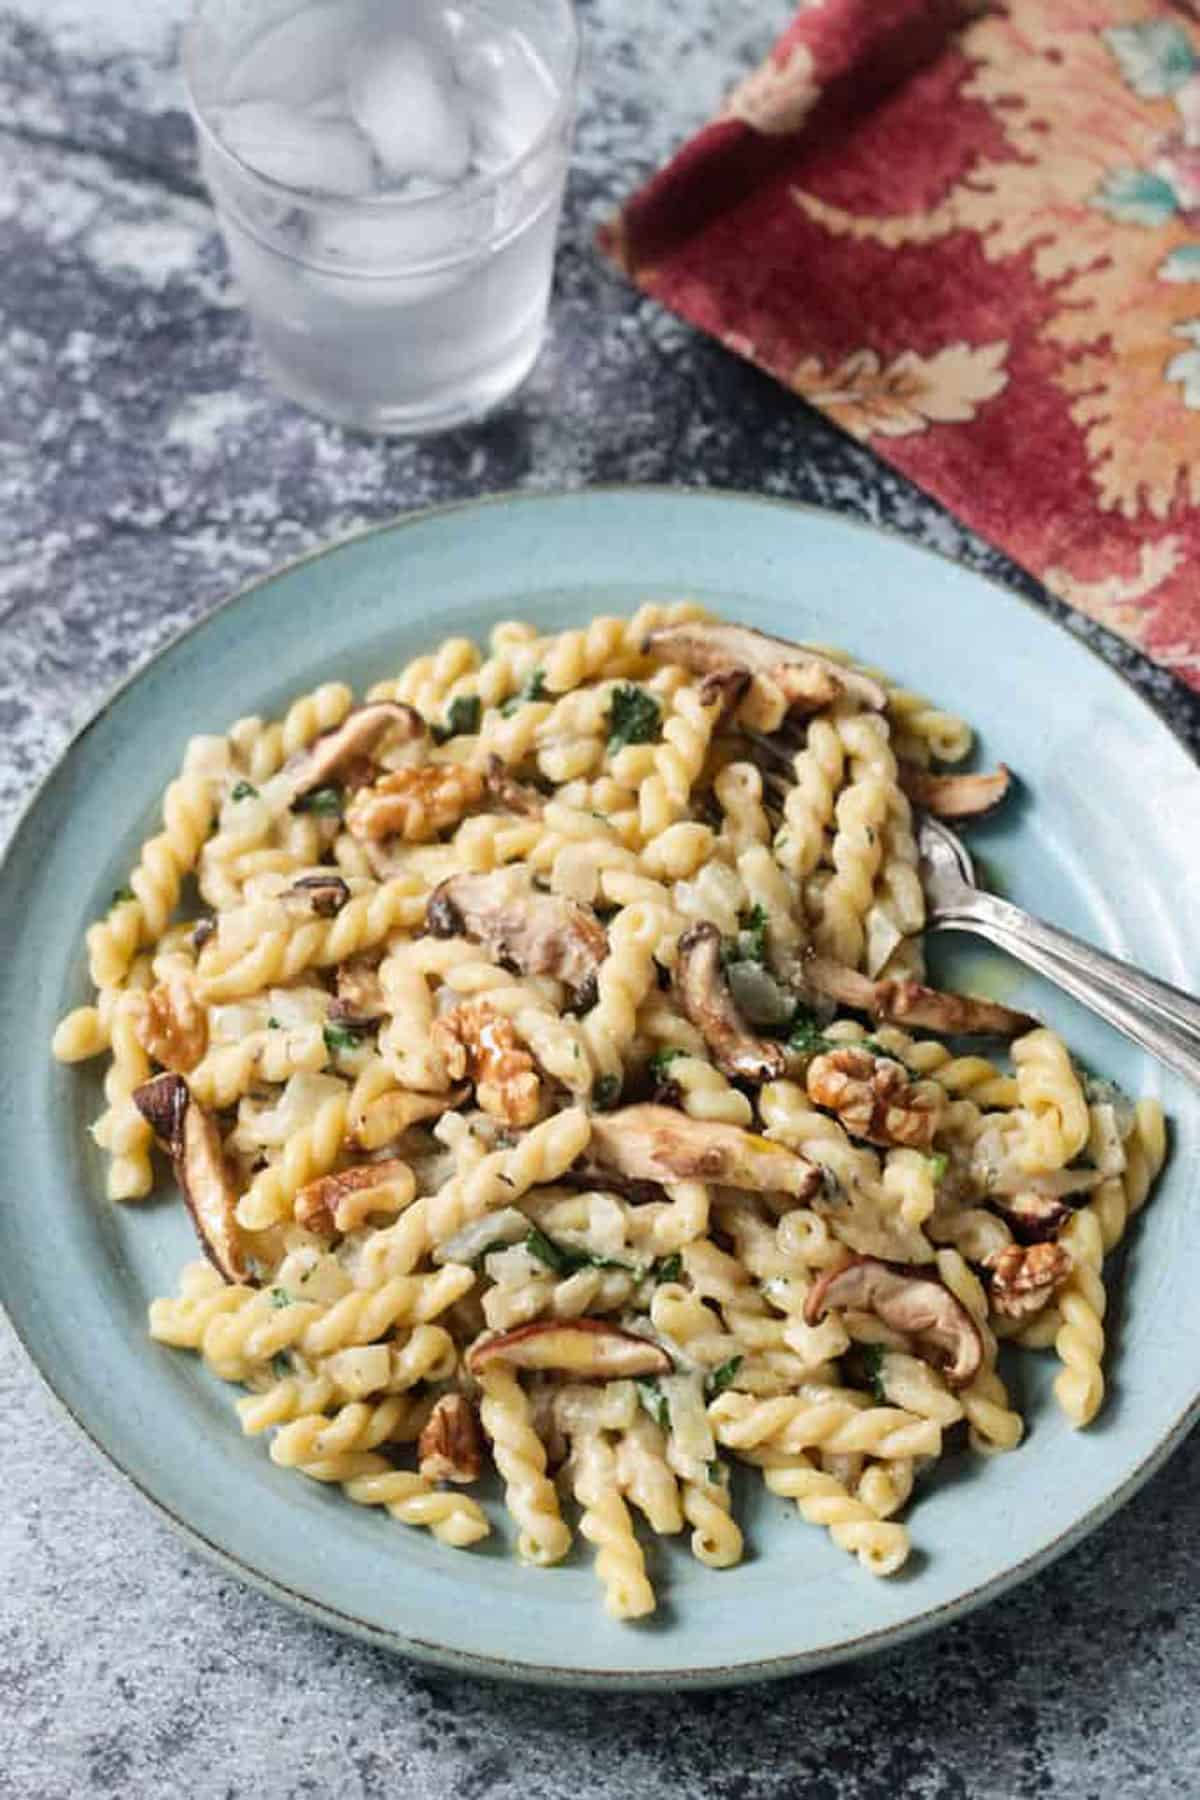 Gemelli pasta with mushrooms and walnuts on a blue plate with two forks.